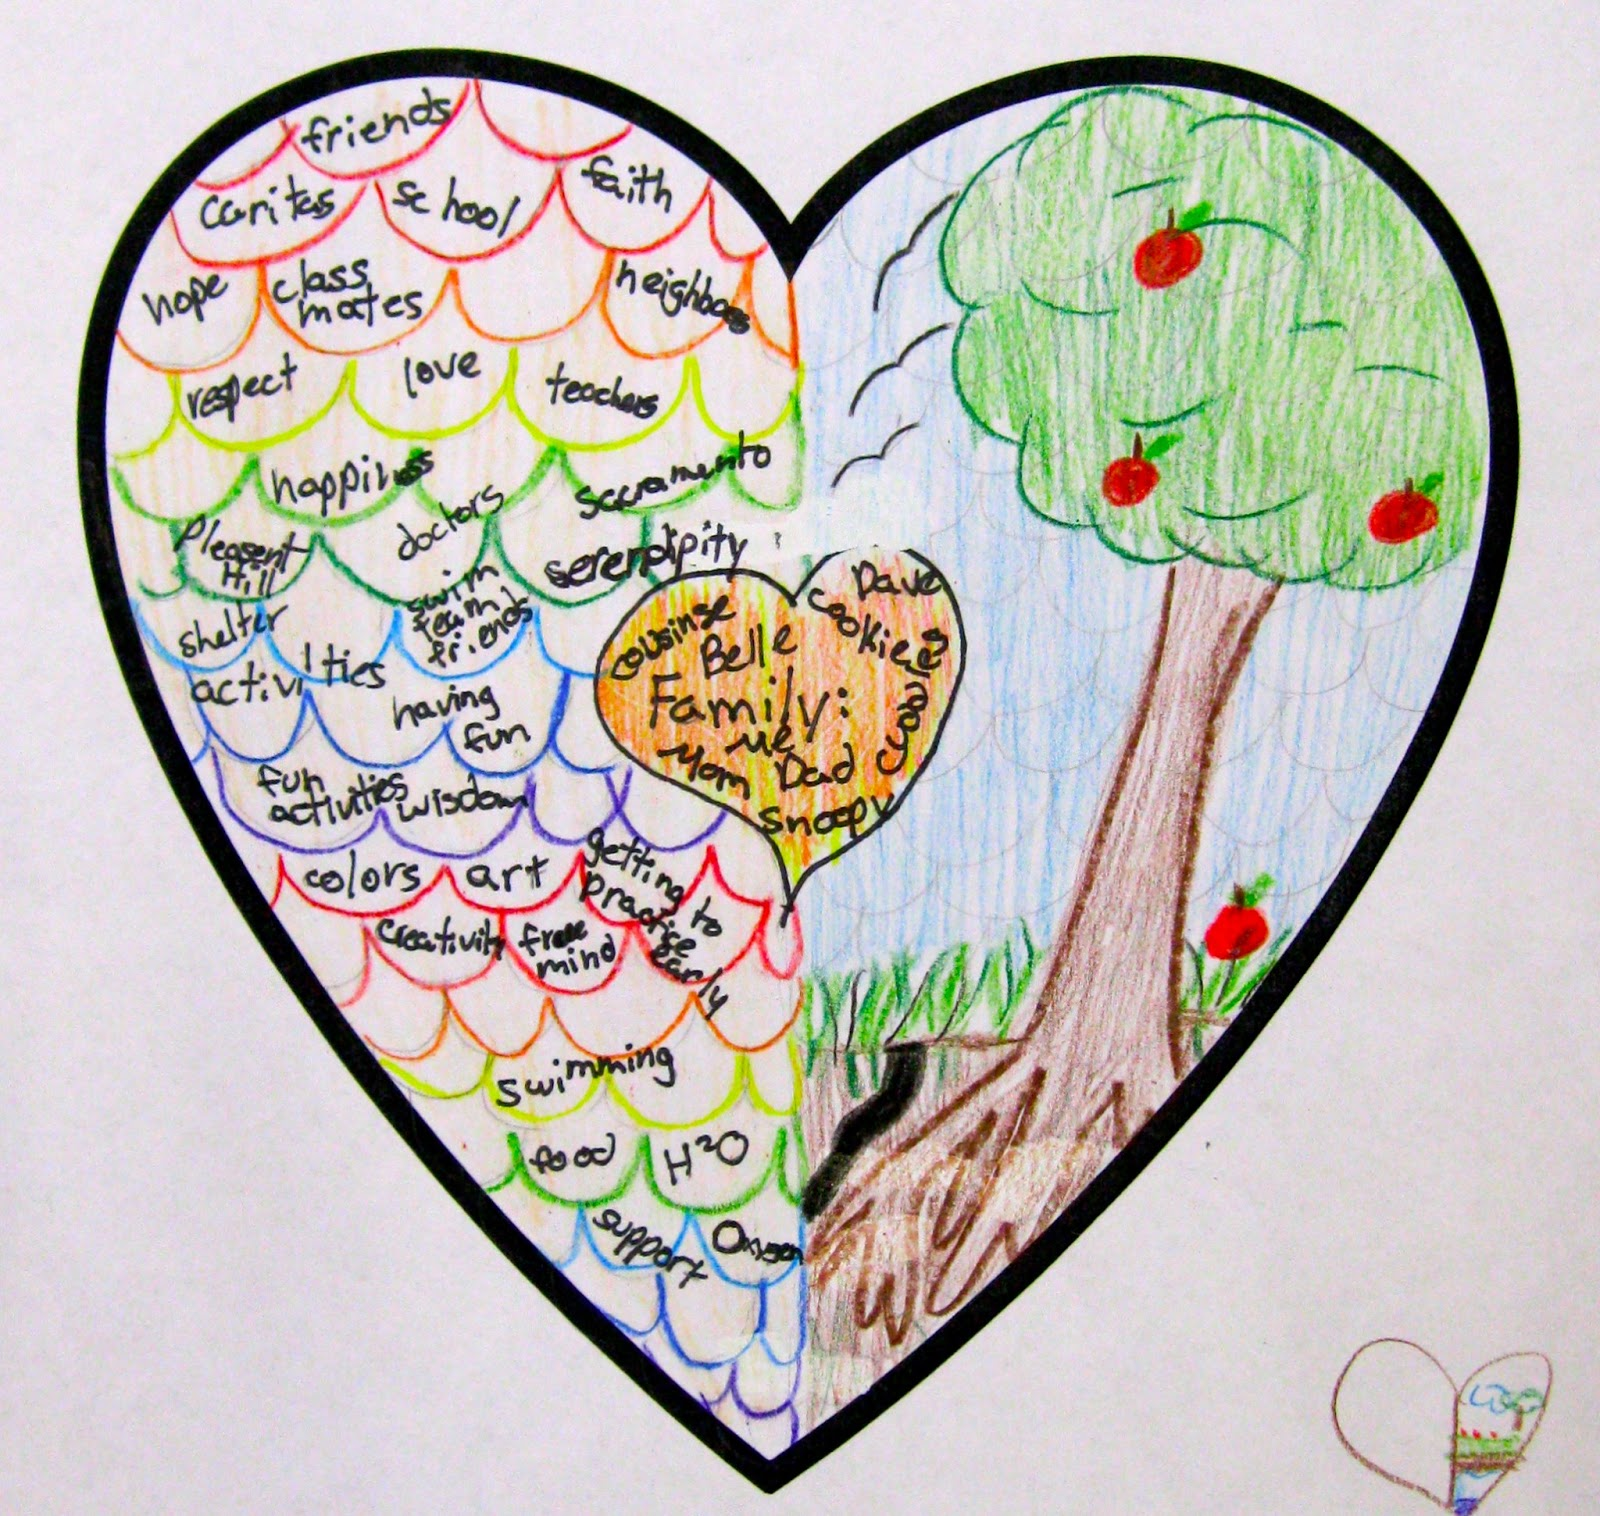 notes from mcteach helping students choose2matter part 2 Heart Map For Writers Workshop Heart Map For Writers Workshop #8 heart map for writers workshop